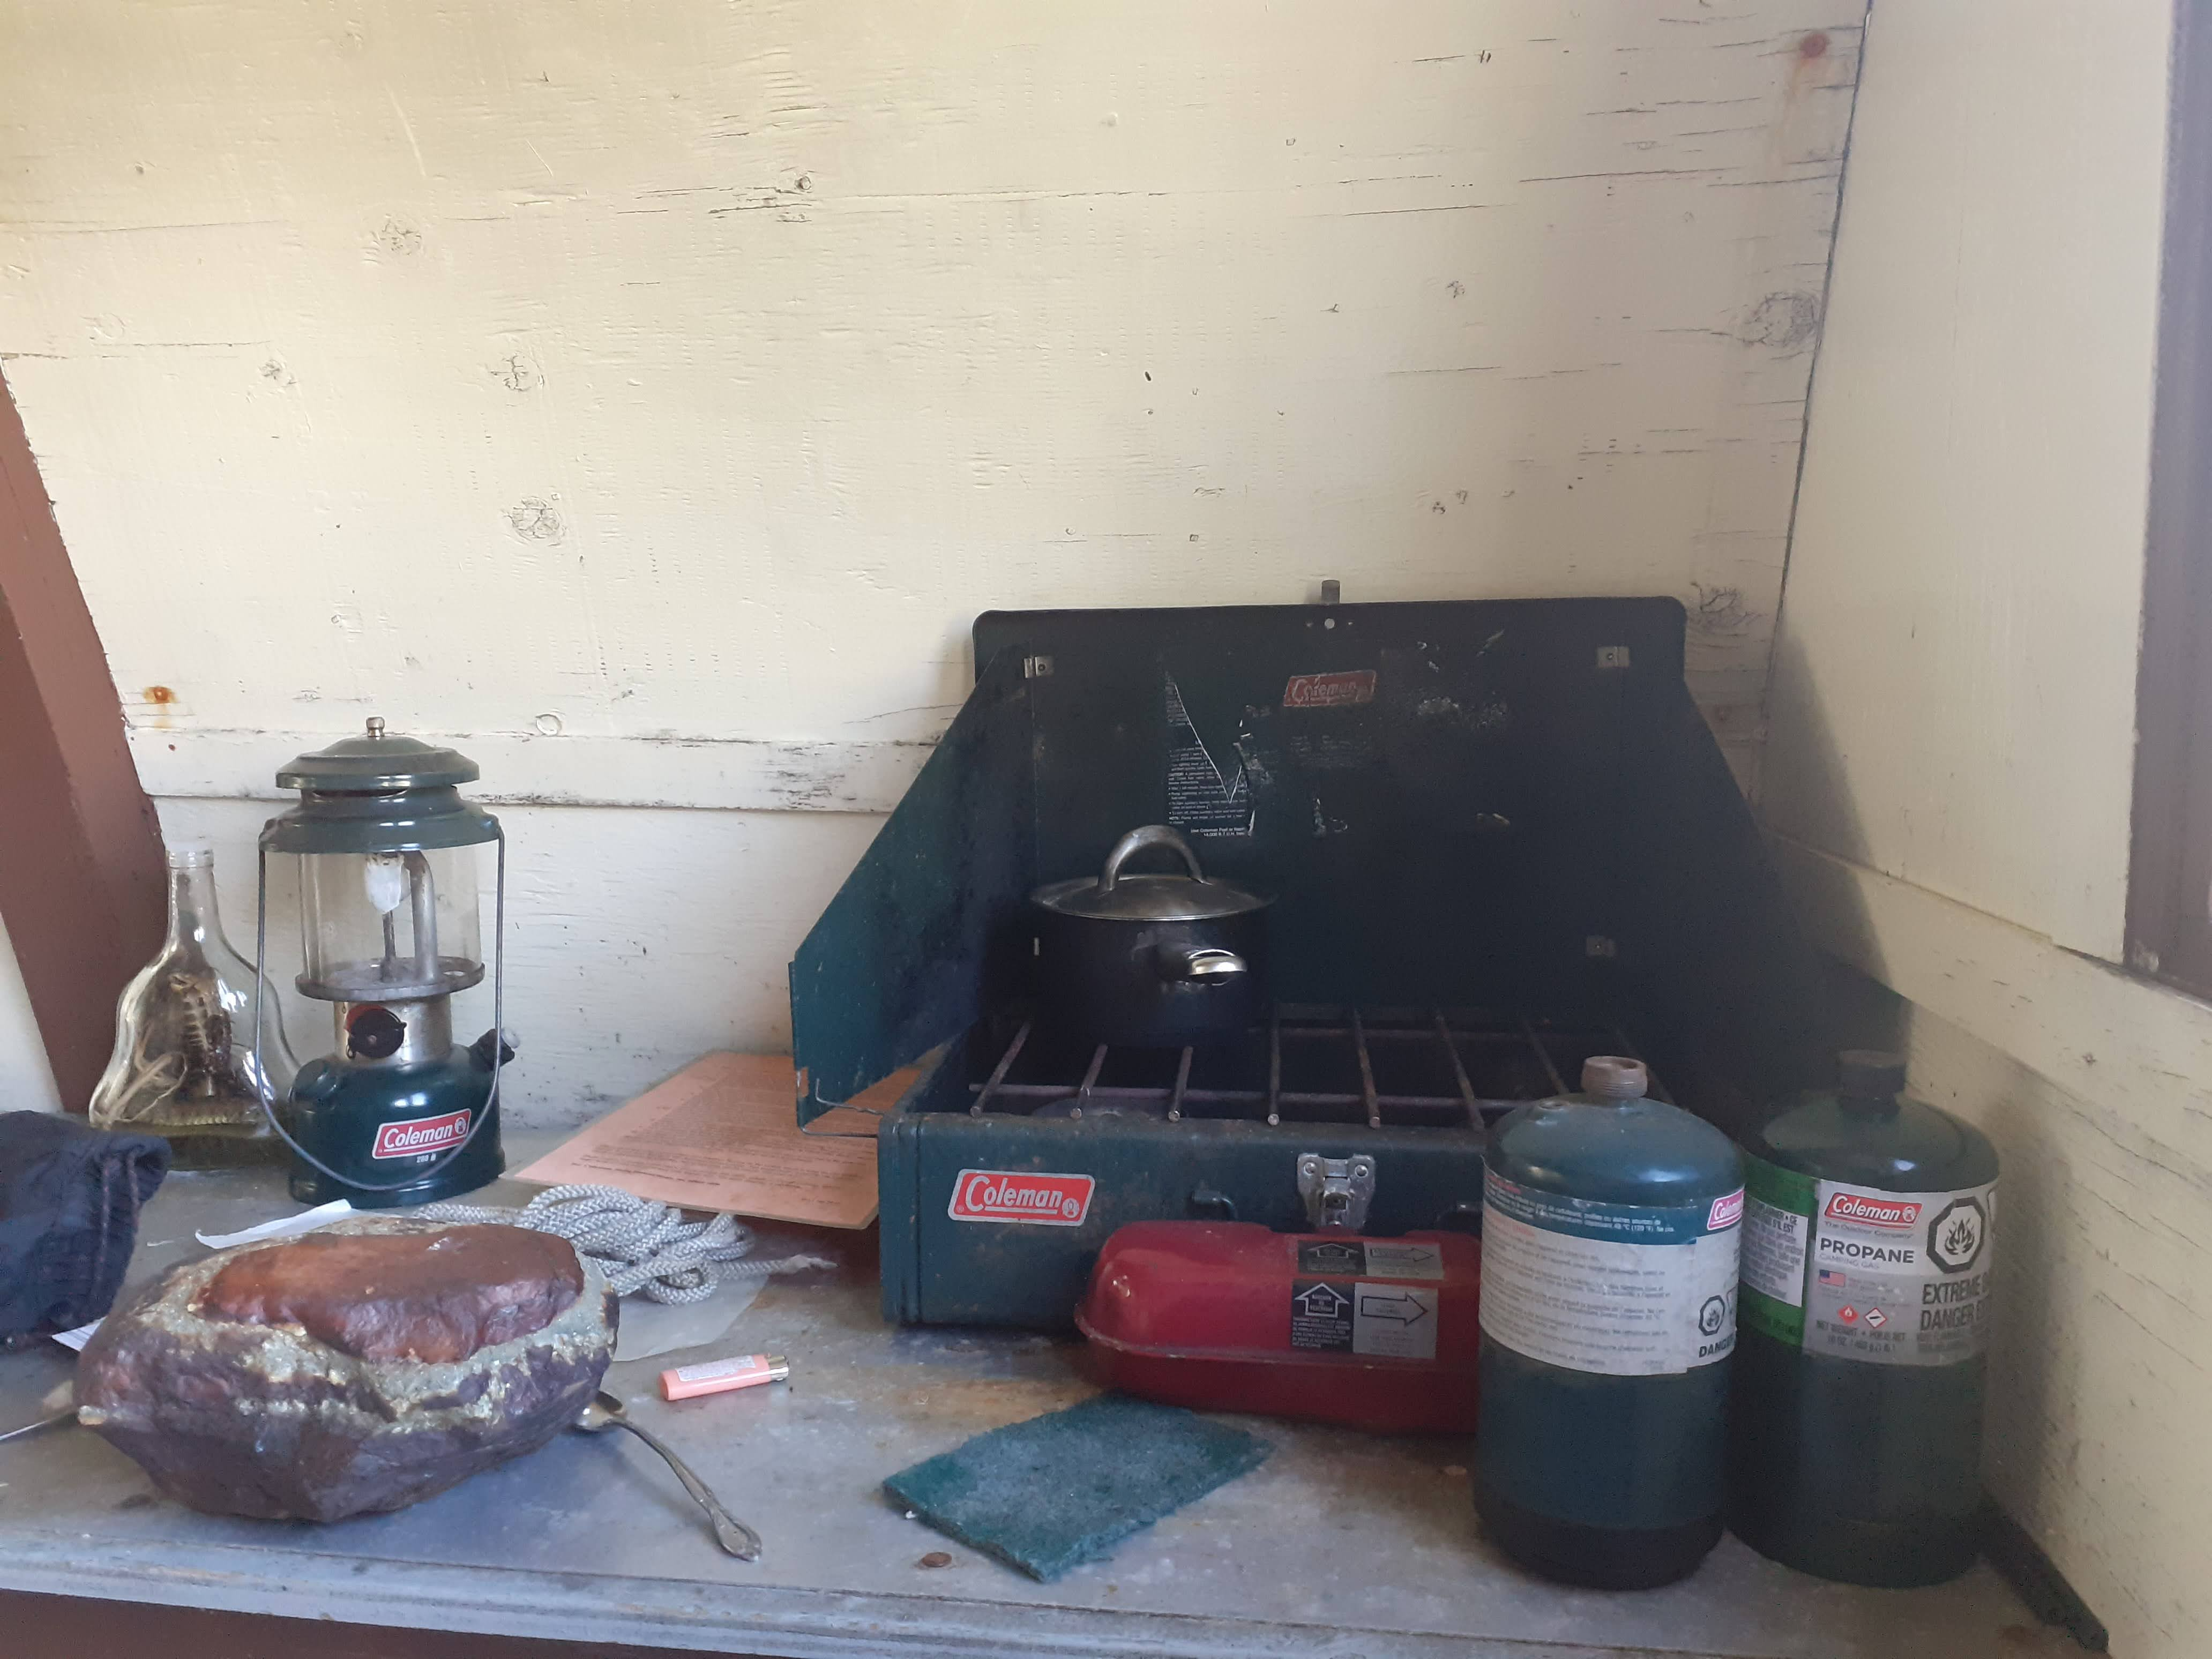 Cooking equipment and the forbidden Cobra drink (far left). Photo by Tom